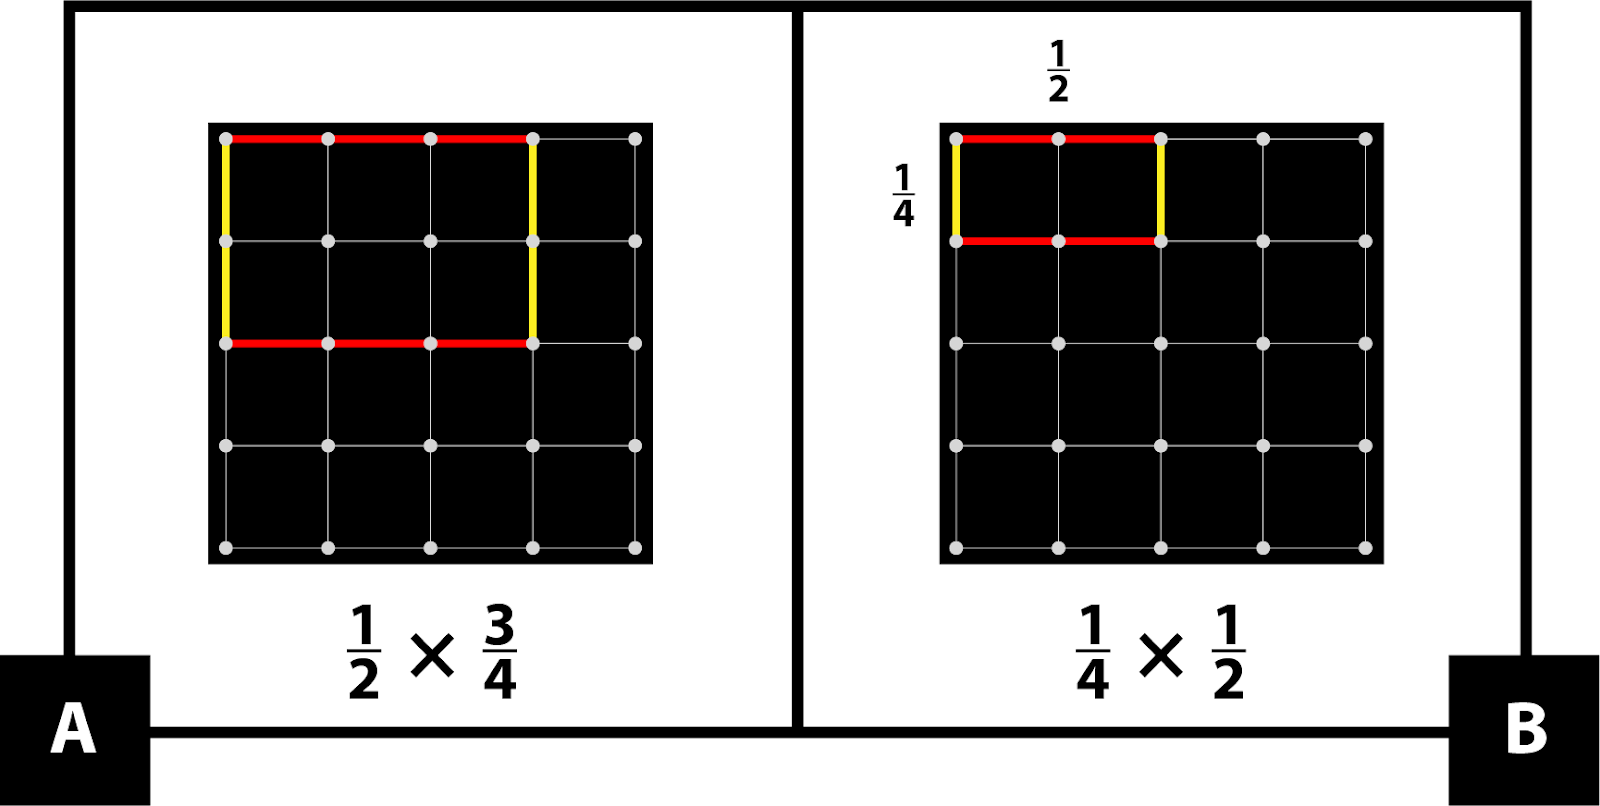 A: A geoboard with a rectangle 2 sections by 3 sections. 1-half times 3-fourths. B: A geoboard with a rectangle 1 section by 2 sections. 1-fourth times 1-half.